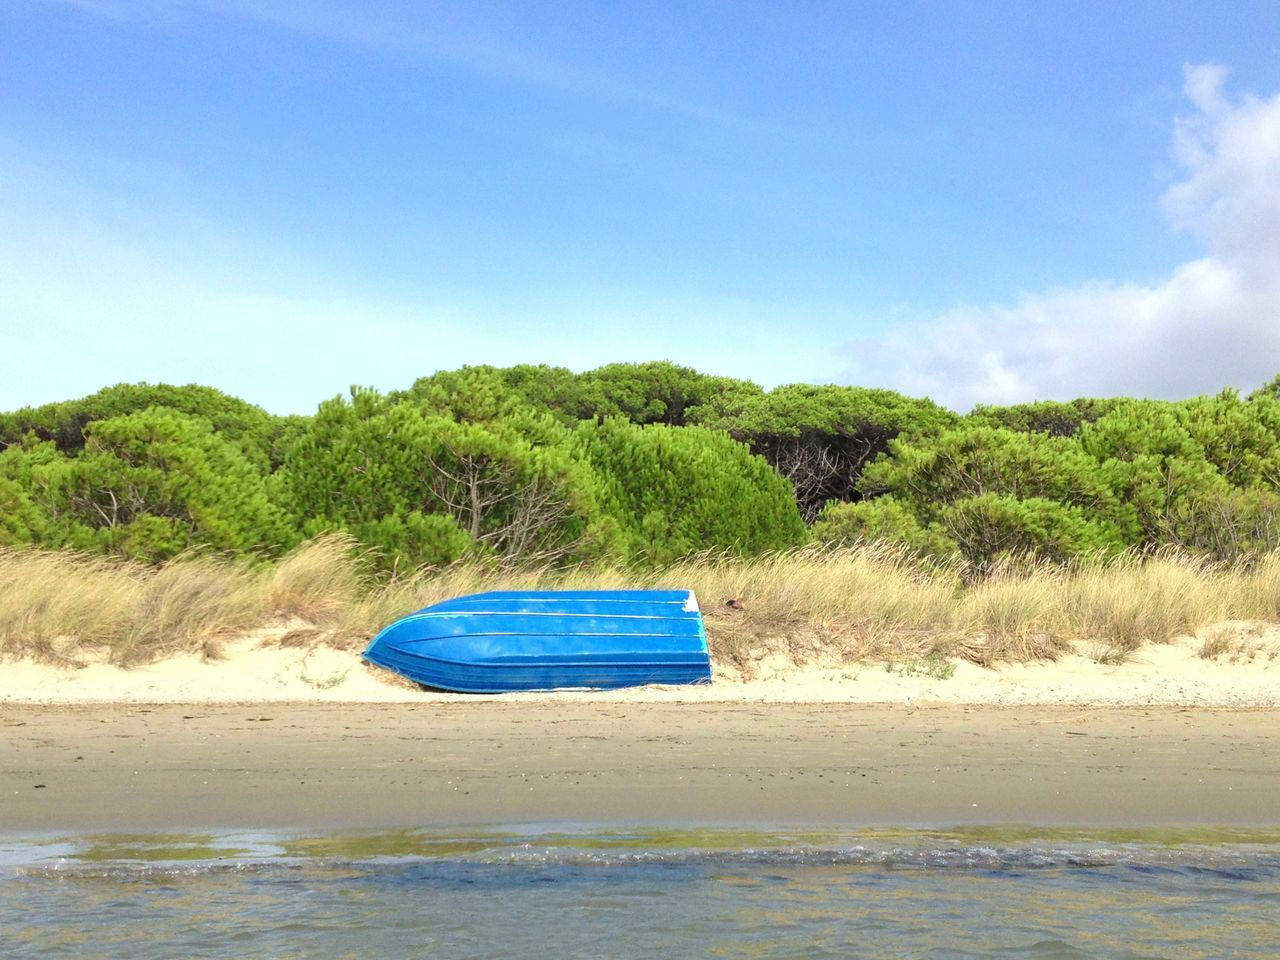 Blue Boat On Beach By Sea Against Sky